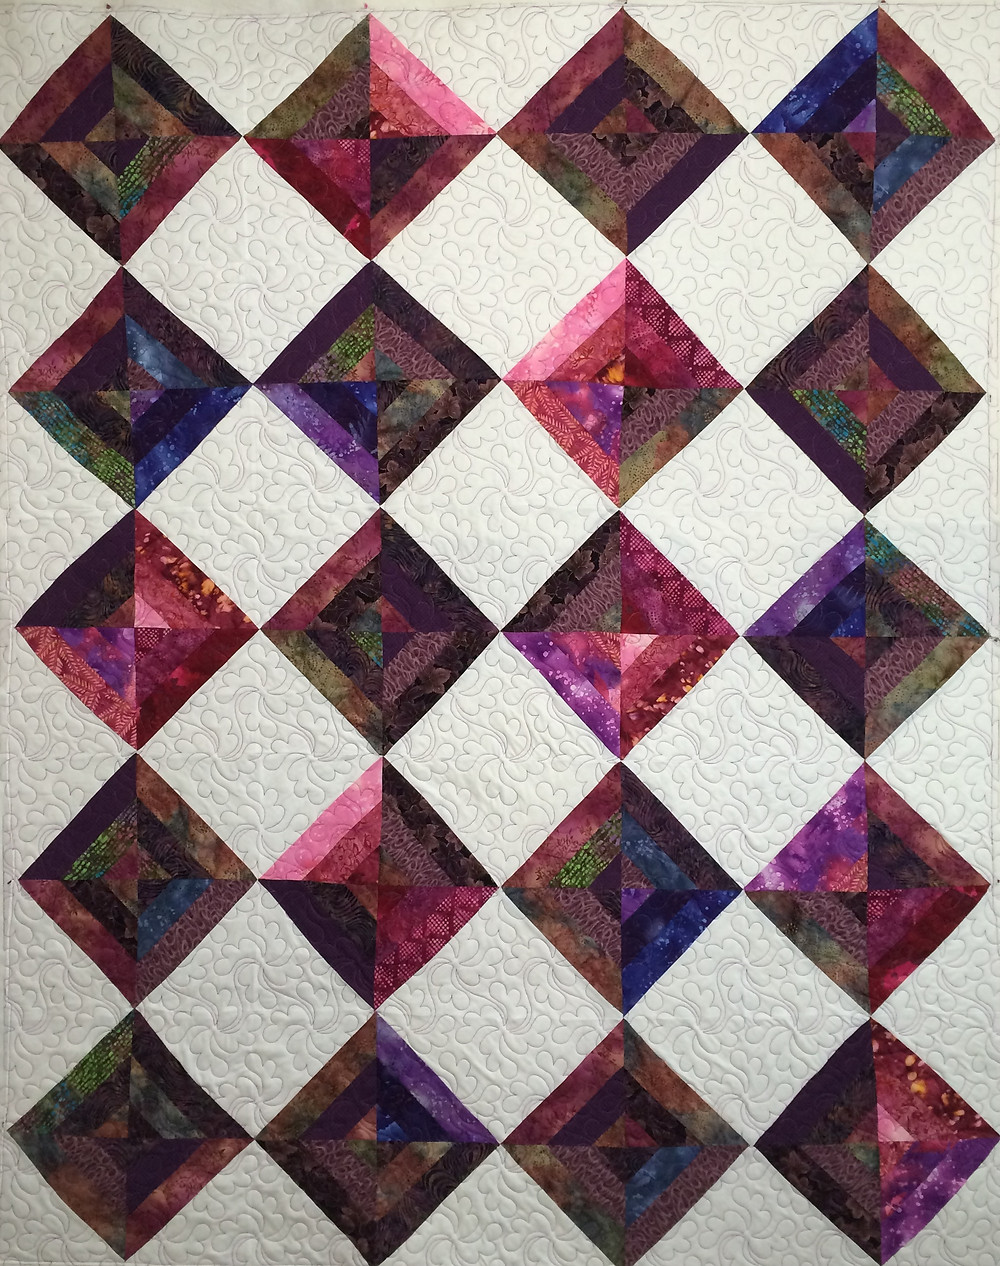 Sue Purple and White Quilt